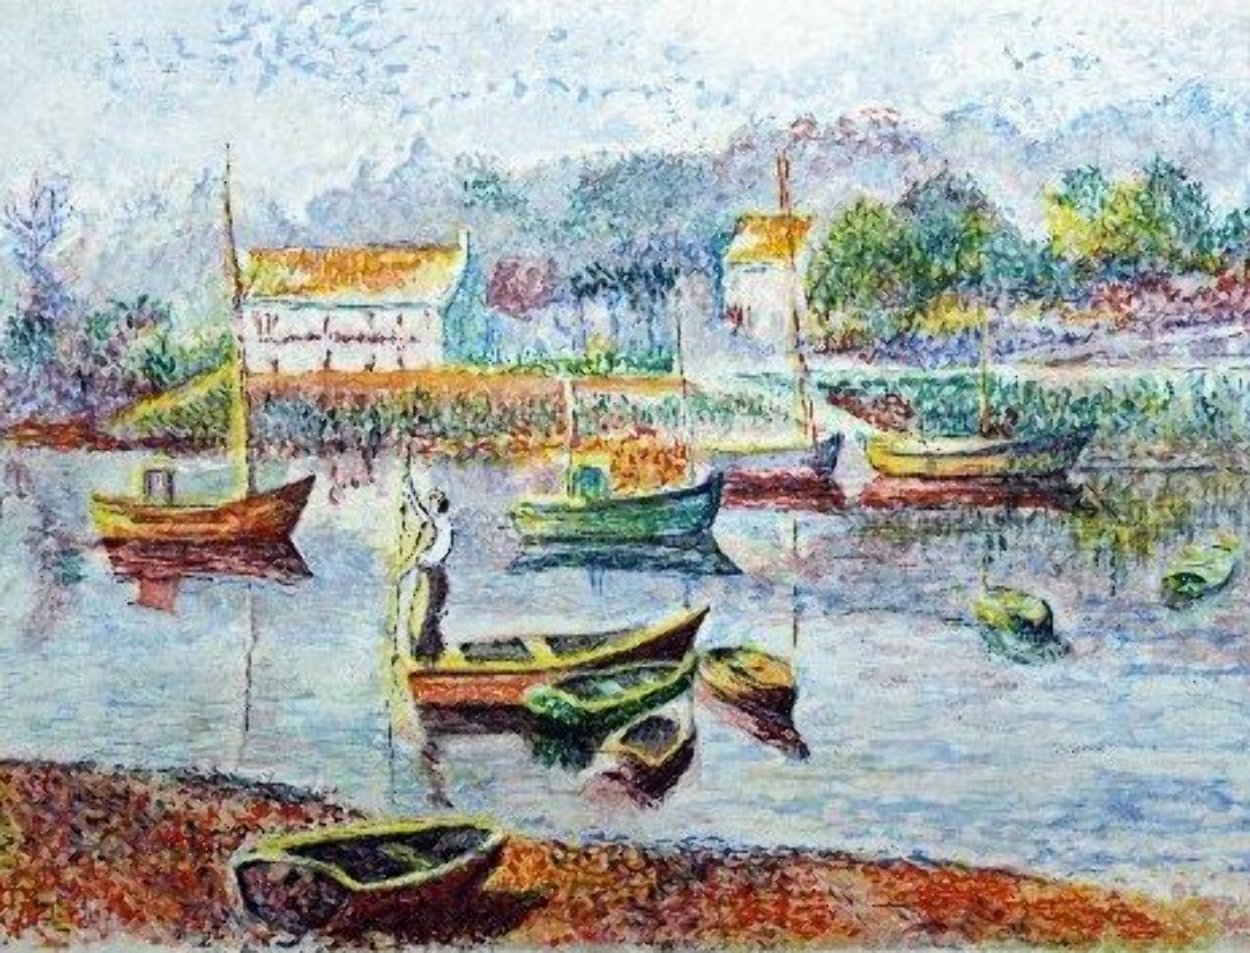 l' Embaracadere 1990 Limited Edition Print by H. Claude Pissarro